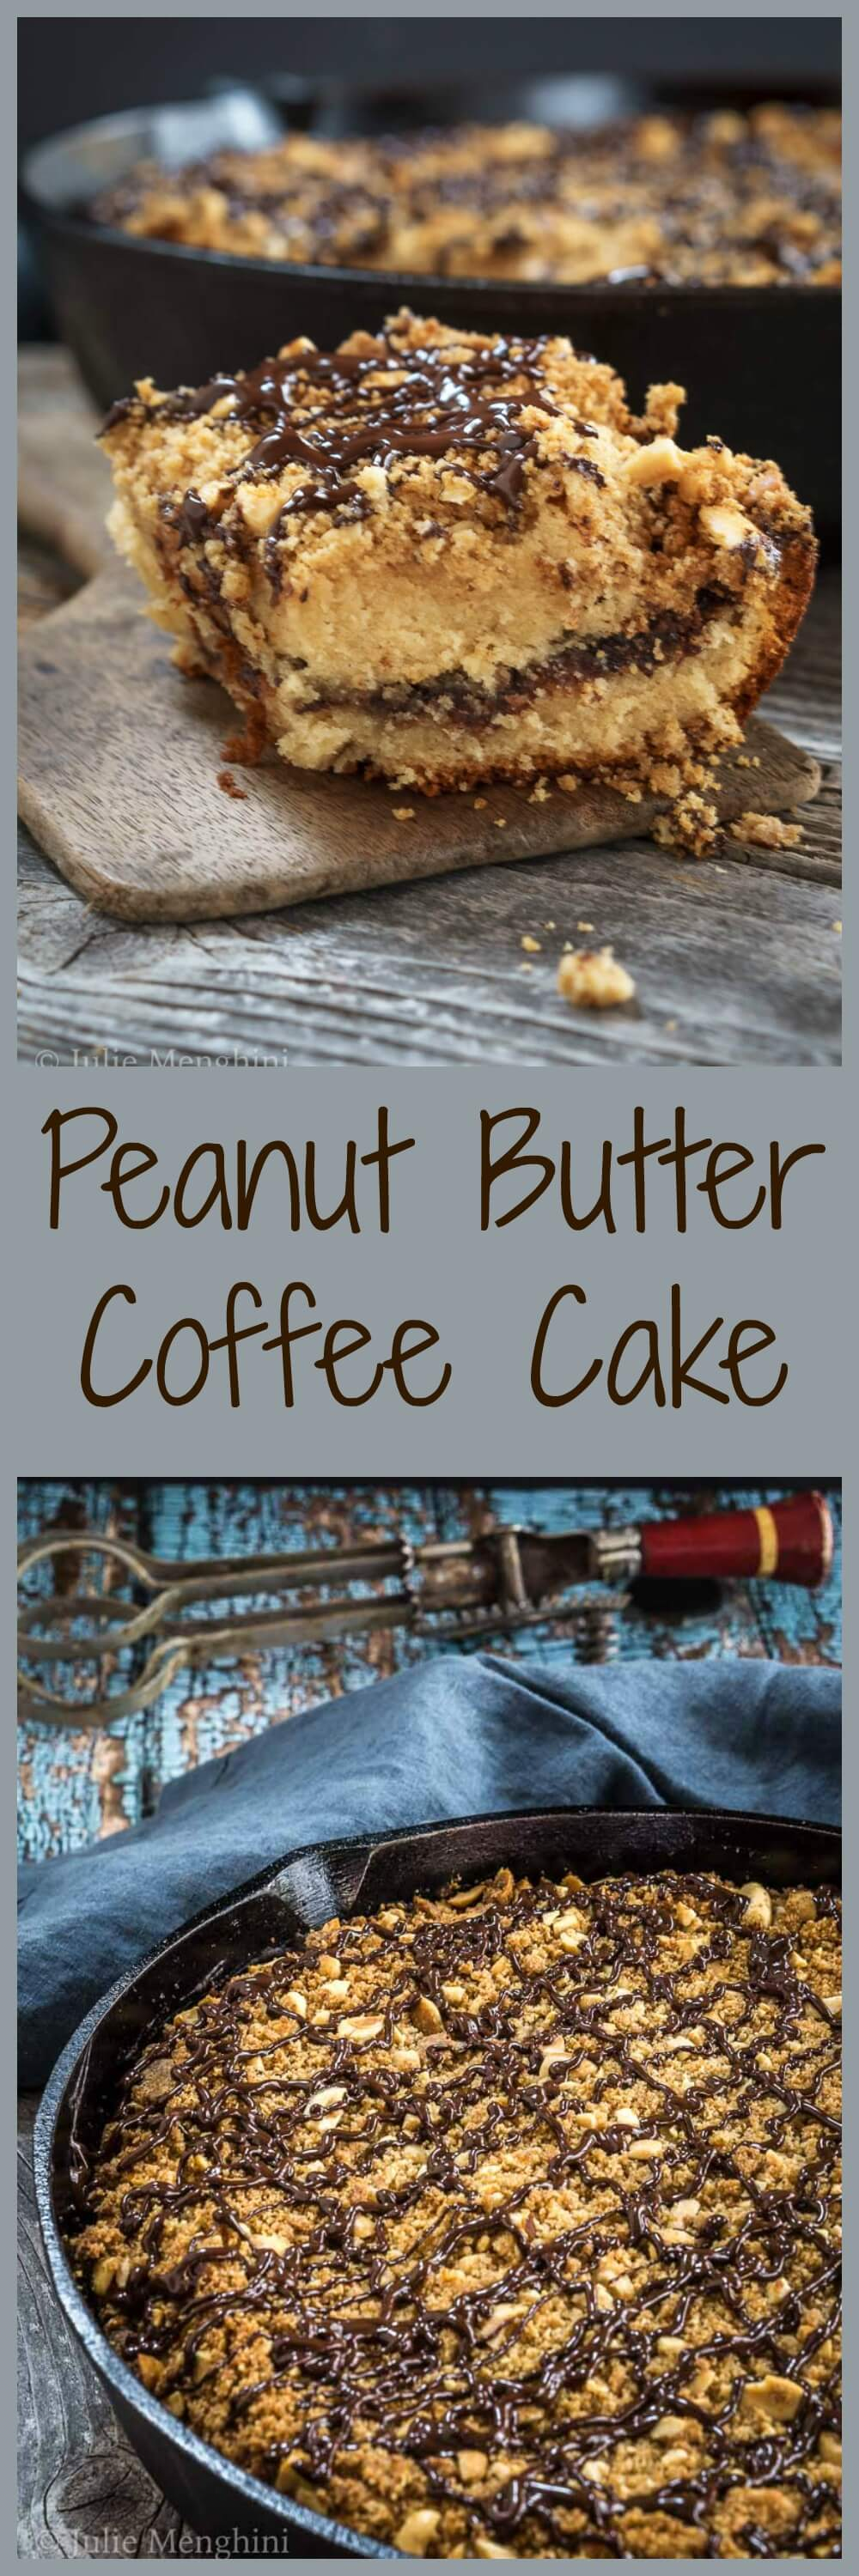 Peanut Butter Coffee Cake is a heavenly mixture of chocolate, peanut butter, and Nutella all under a crunchy layer of streusel topping.  | HostessAtHeart.com #cake #dessert #chocolatedessert